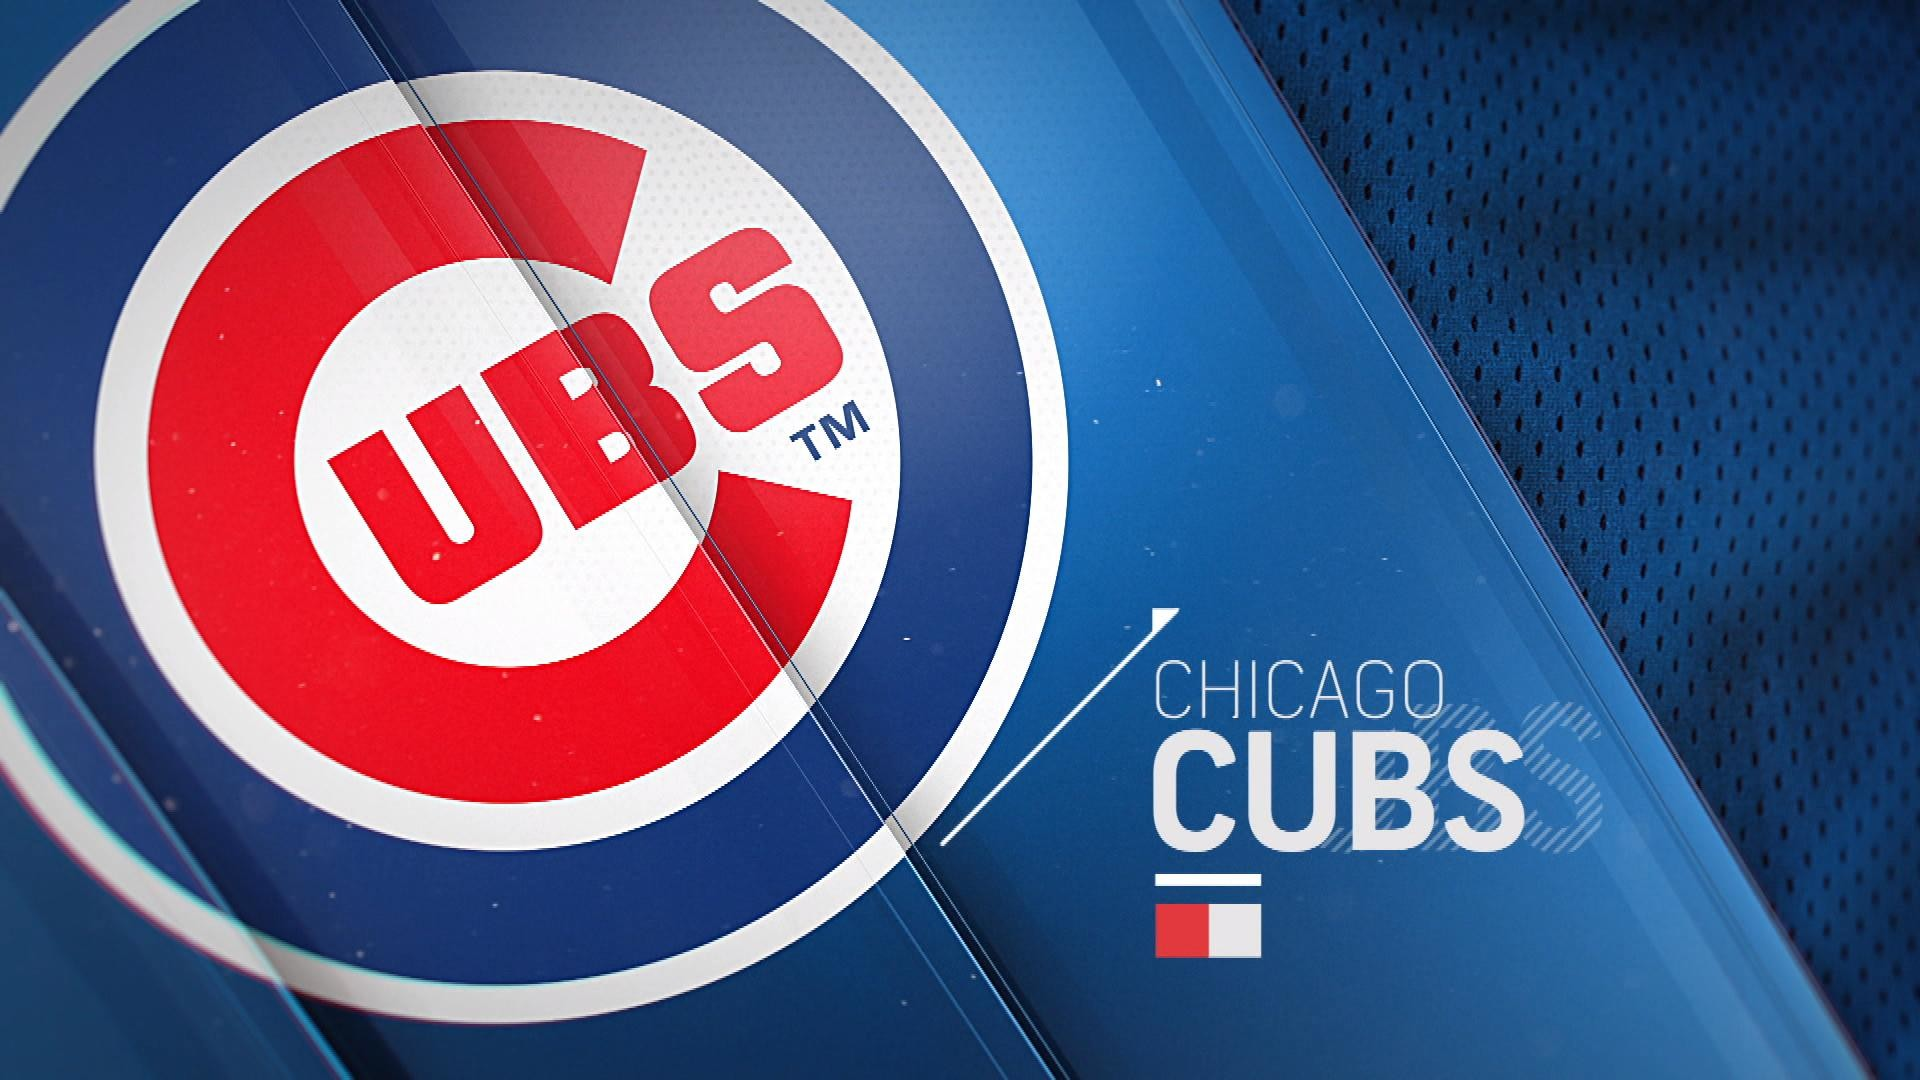 Chicago cubs screensavers and wallpaper 66 images - Cubs background ...